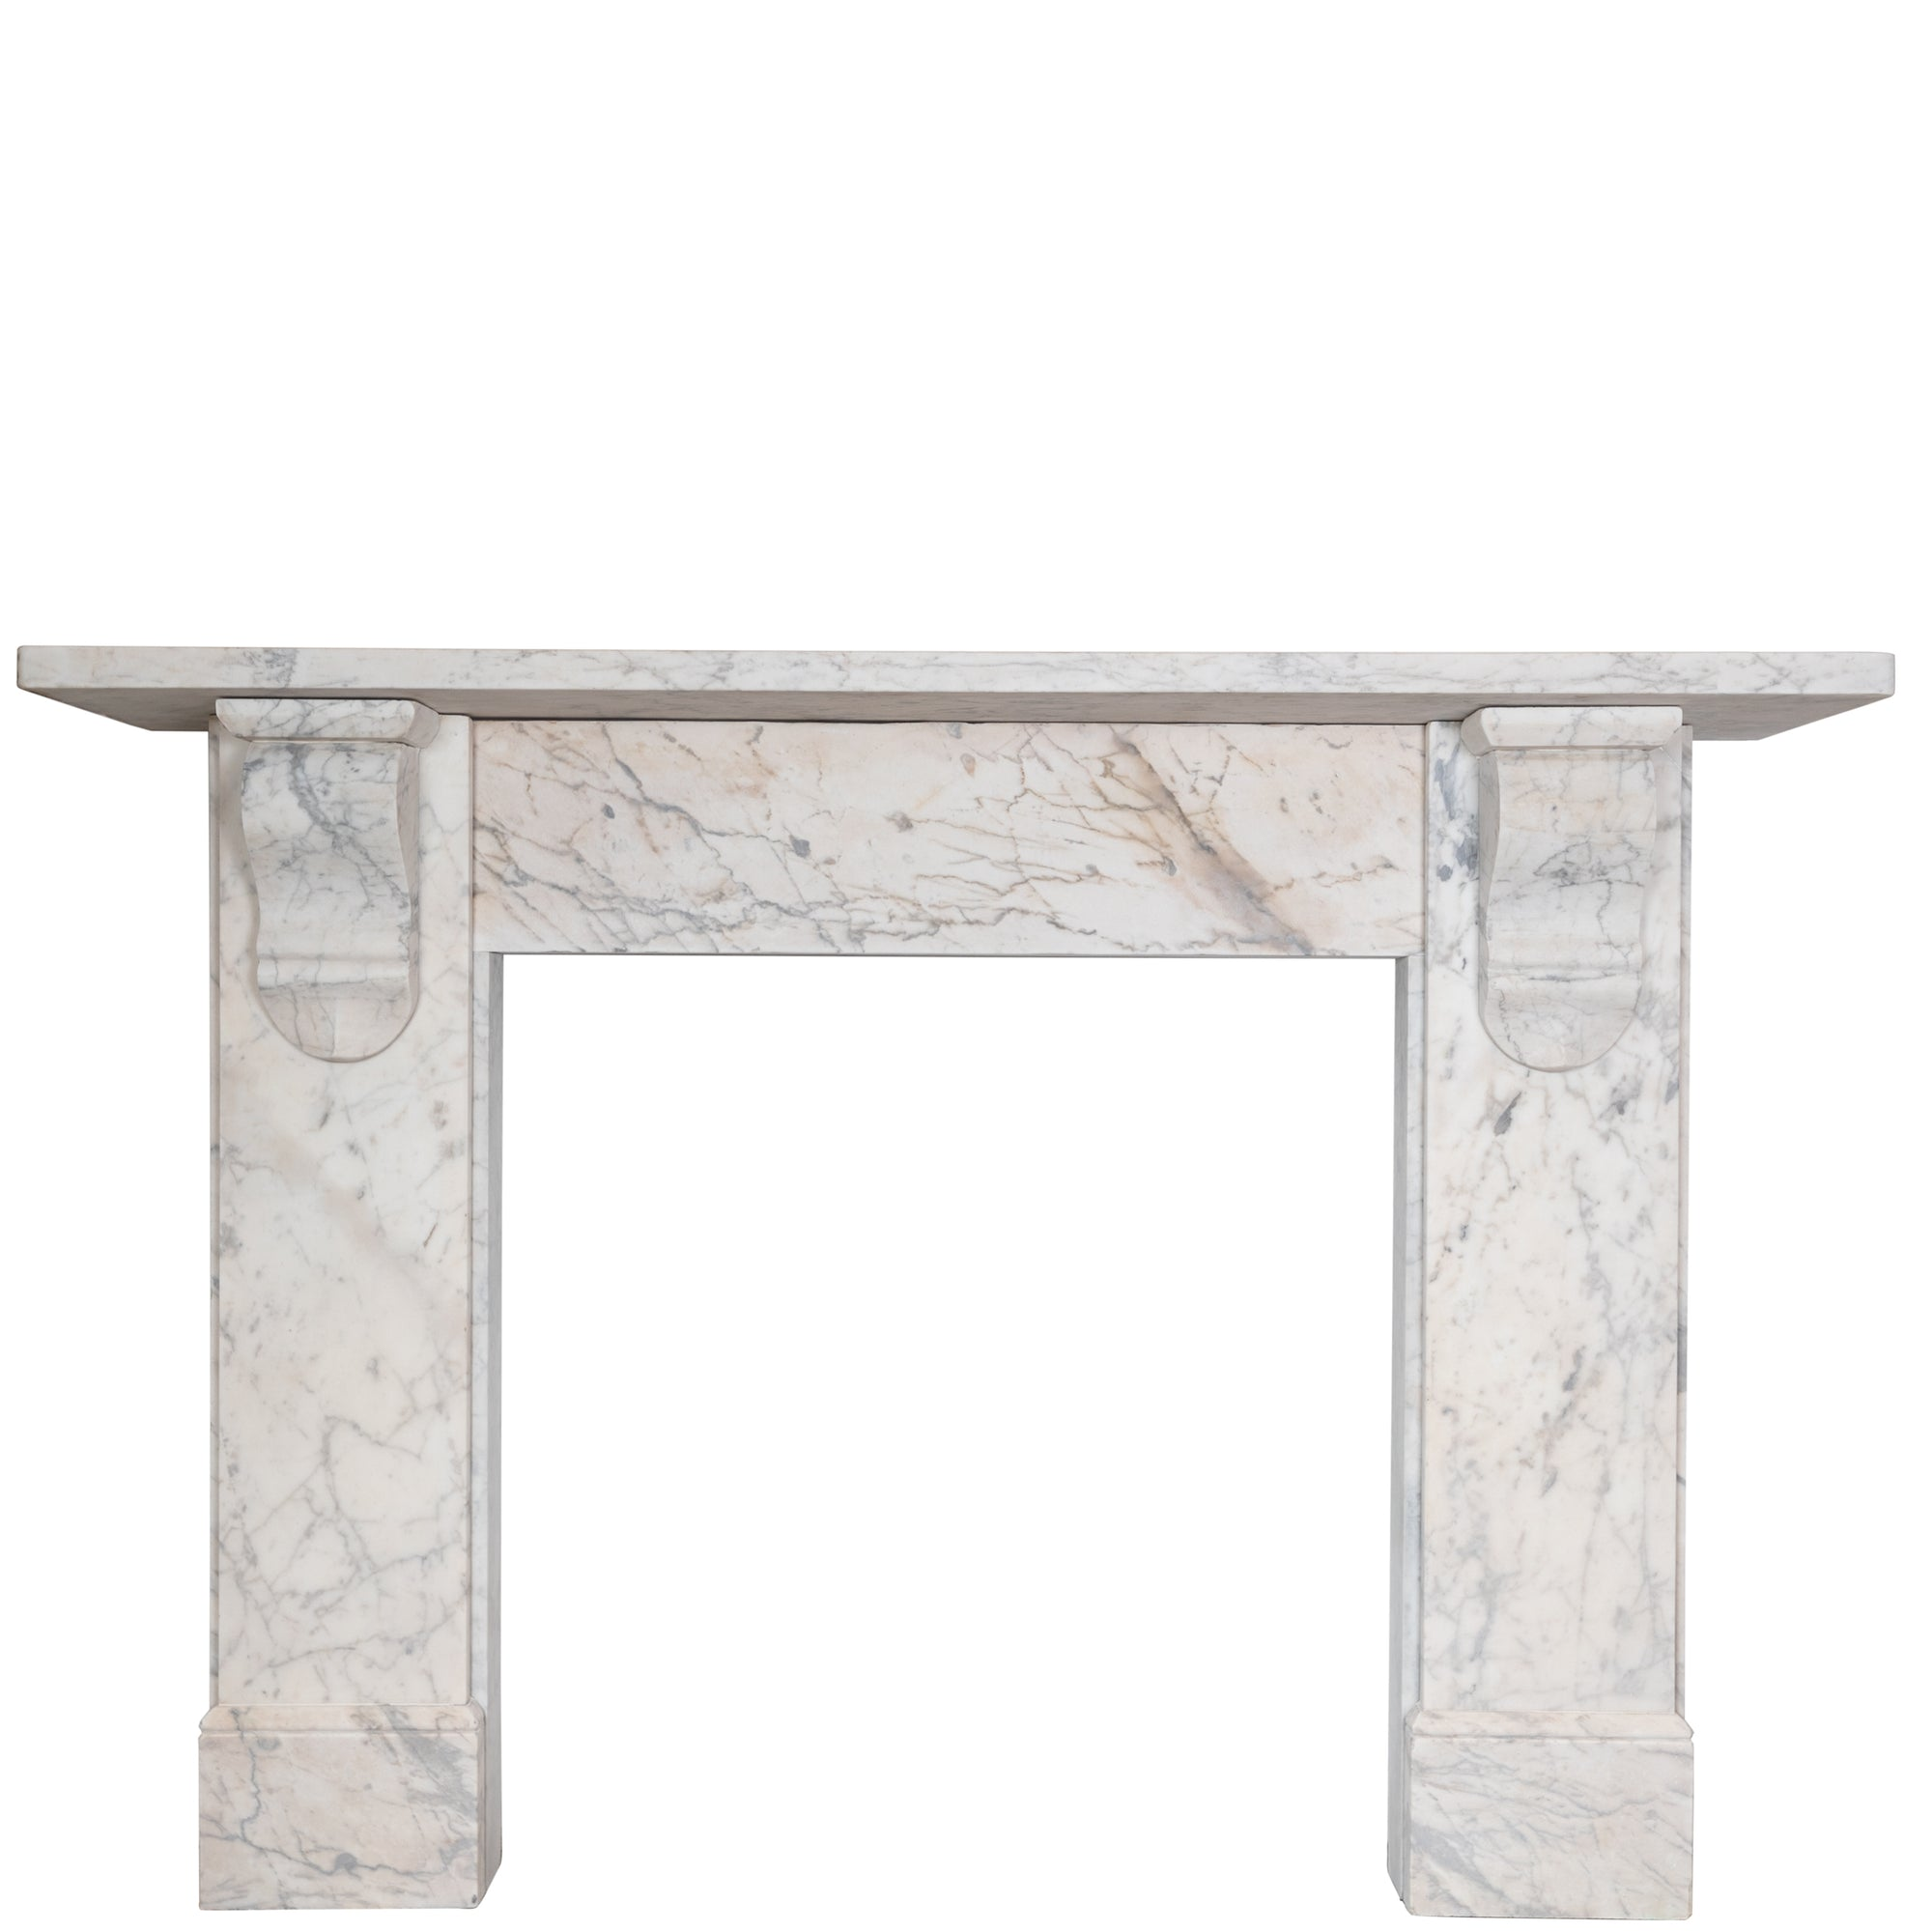 Antique Victorian Carrara Marble Corbel Fireplace Surround - architectural-forum